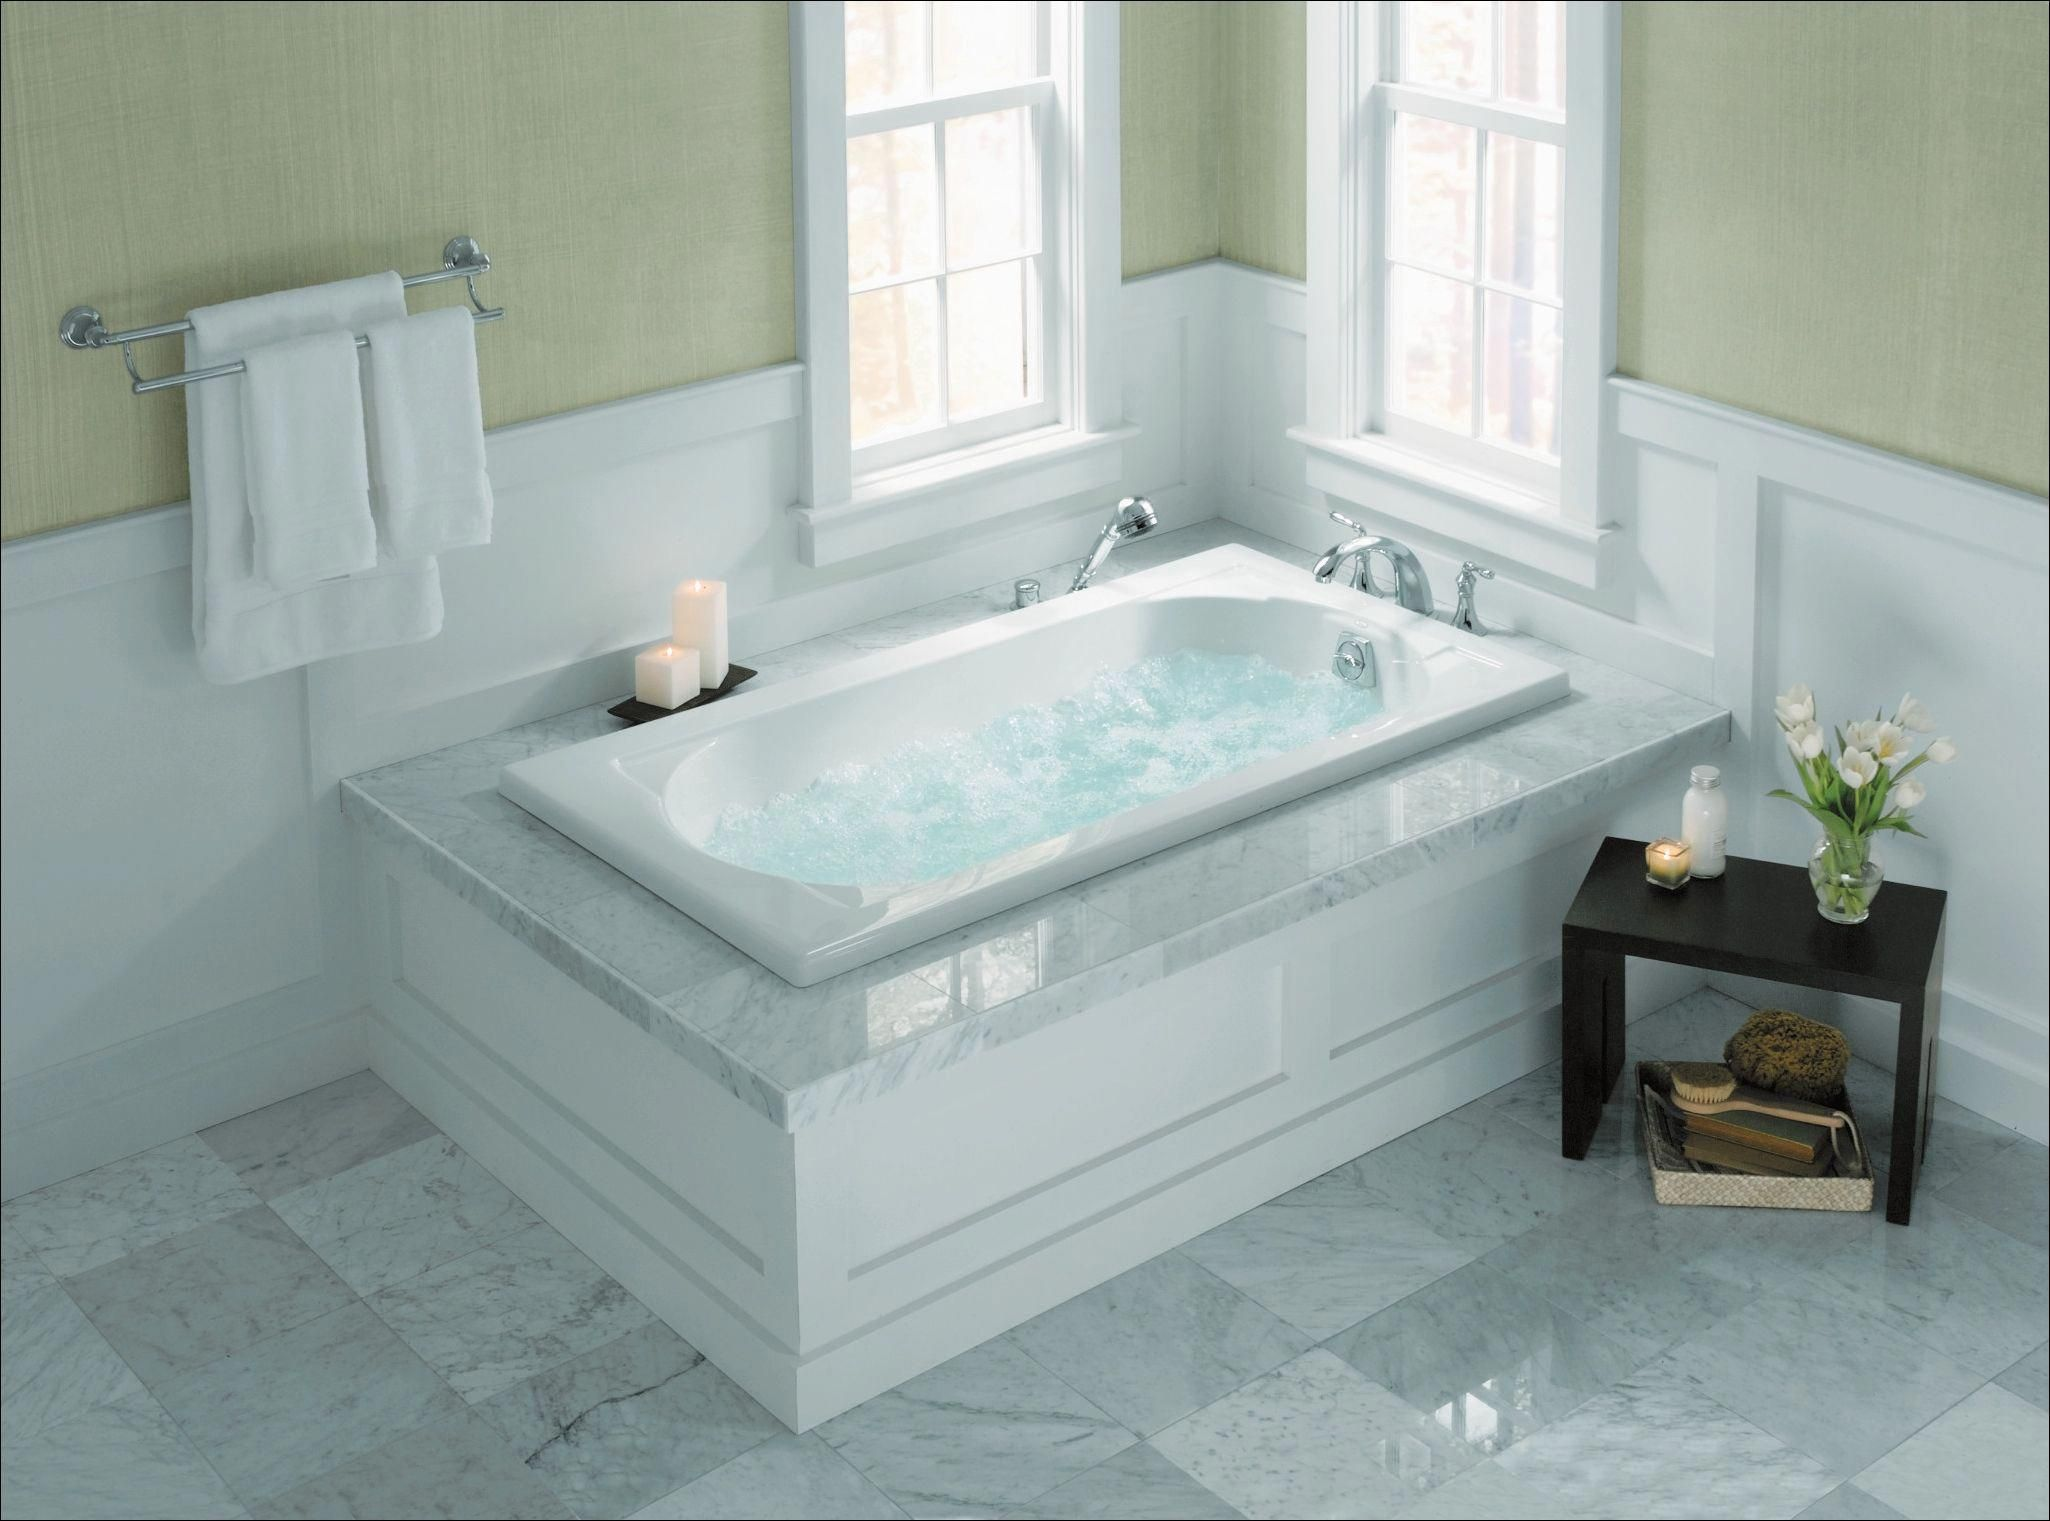 Kohler K T398 4 With Images Roman Tub Faucets Garden Tub Bathtub